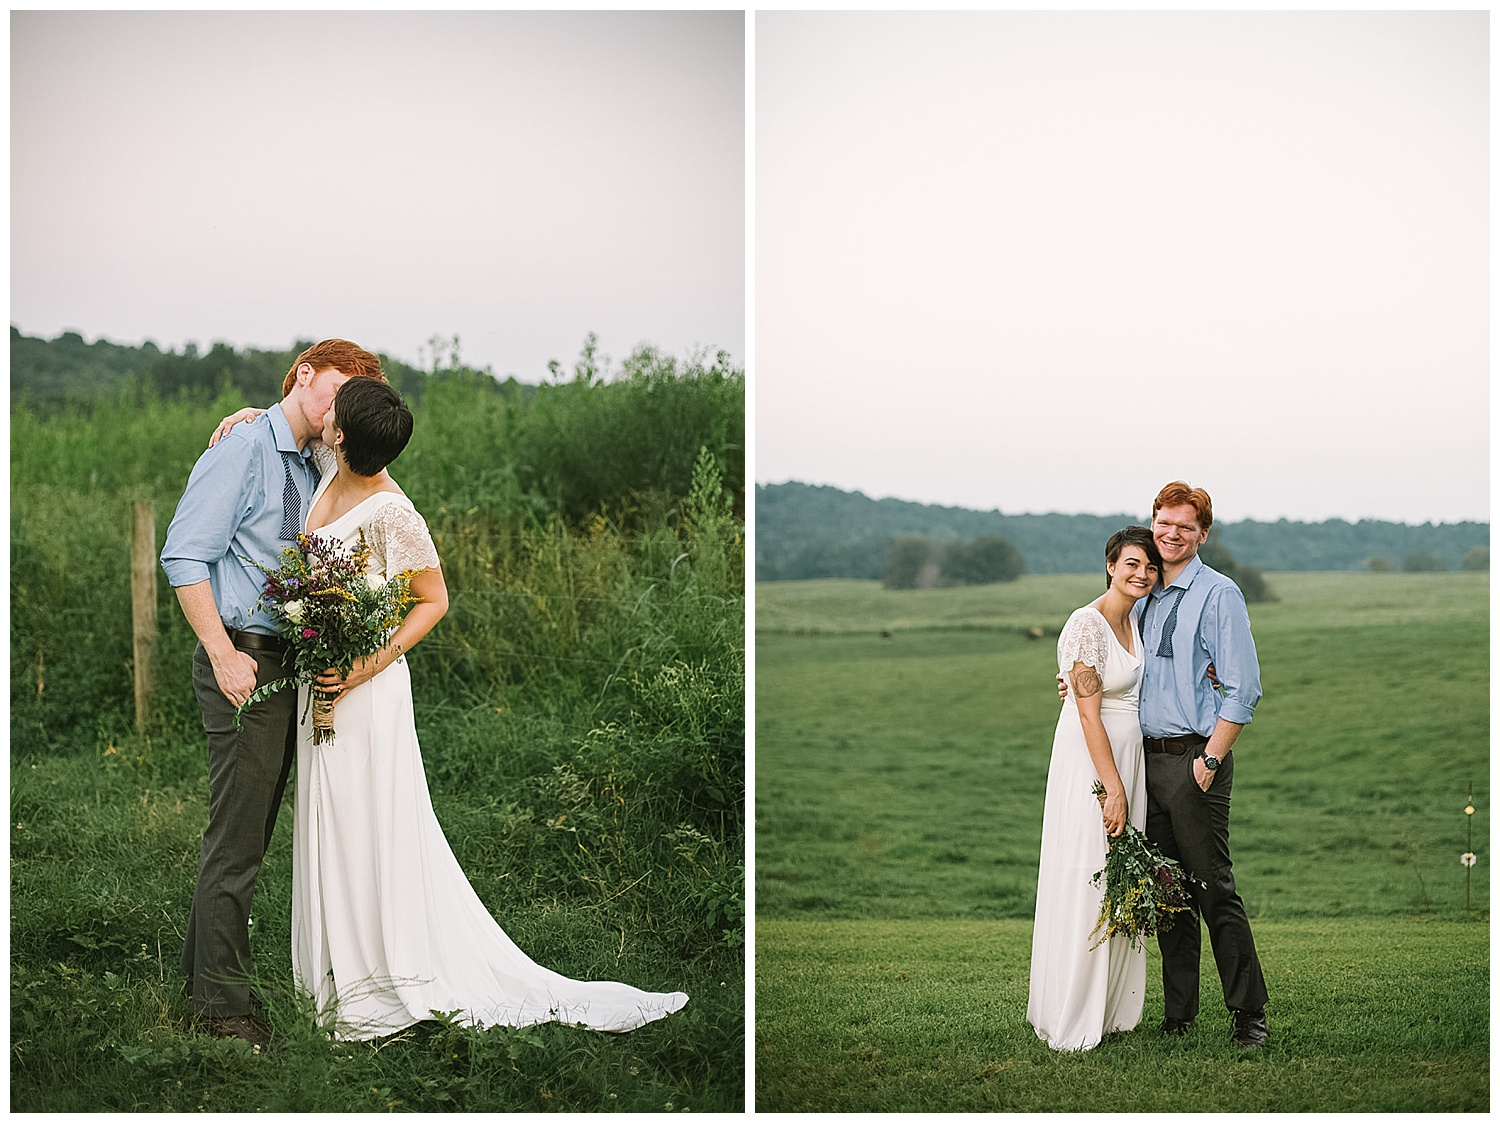 trent.and.kendra.photography.louisville-7.jpg